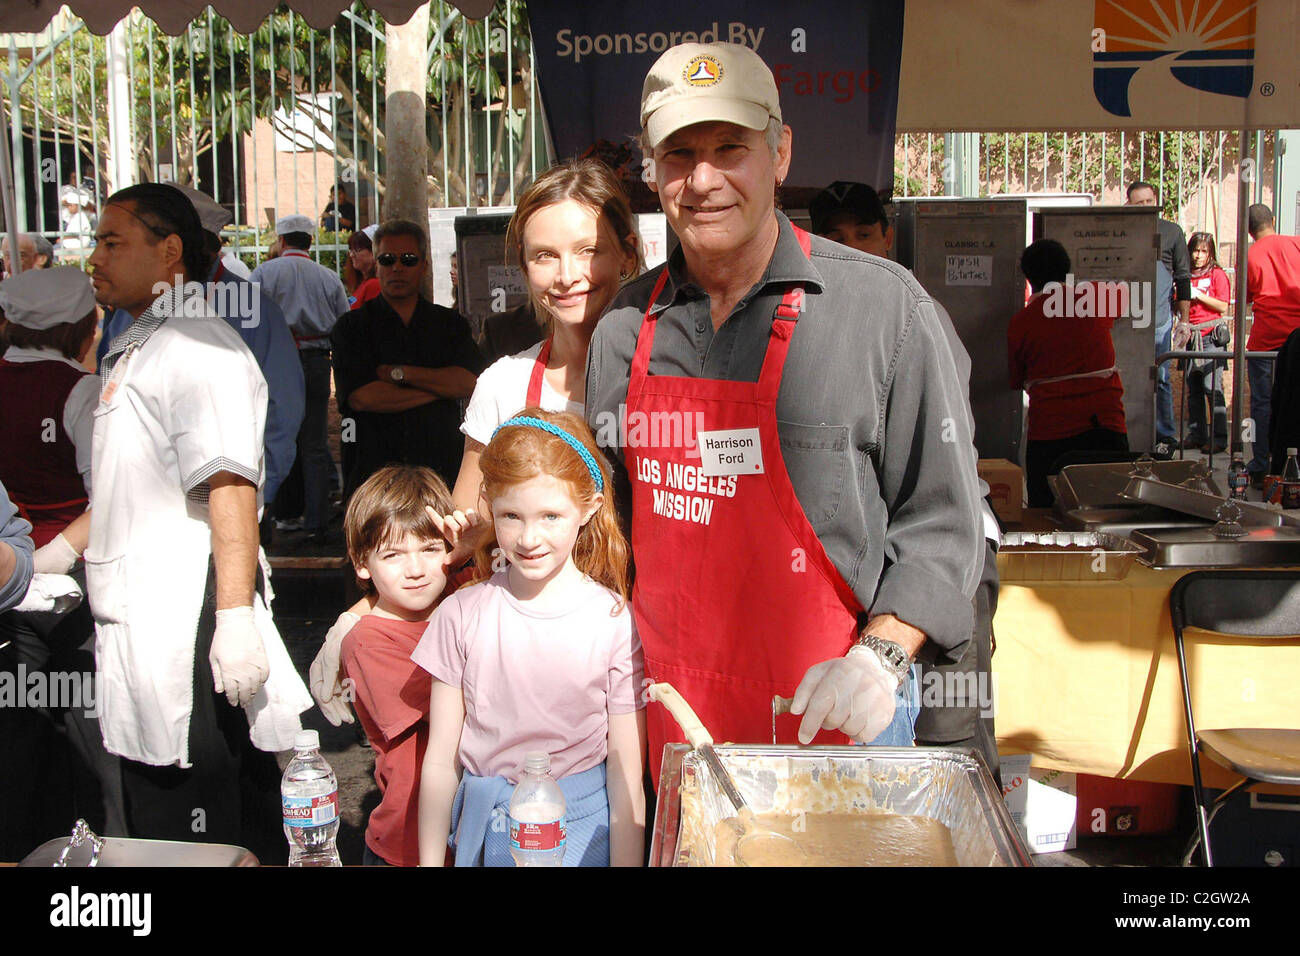 Harrison Ford, Calista Flockhart and son Liam 'Thanksgiving for the